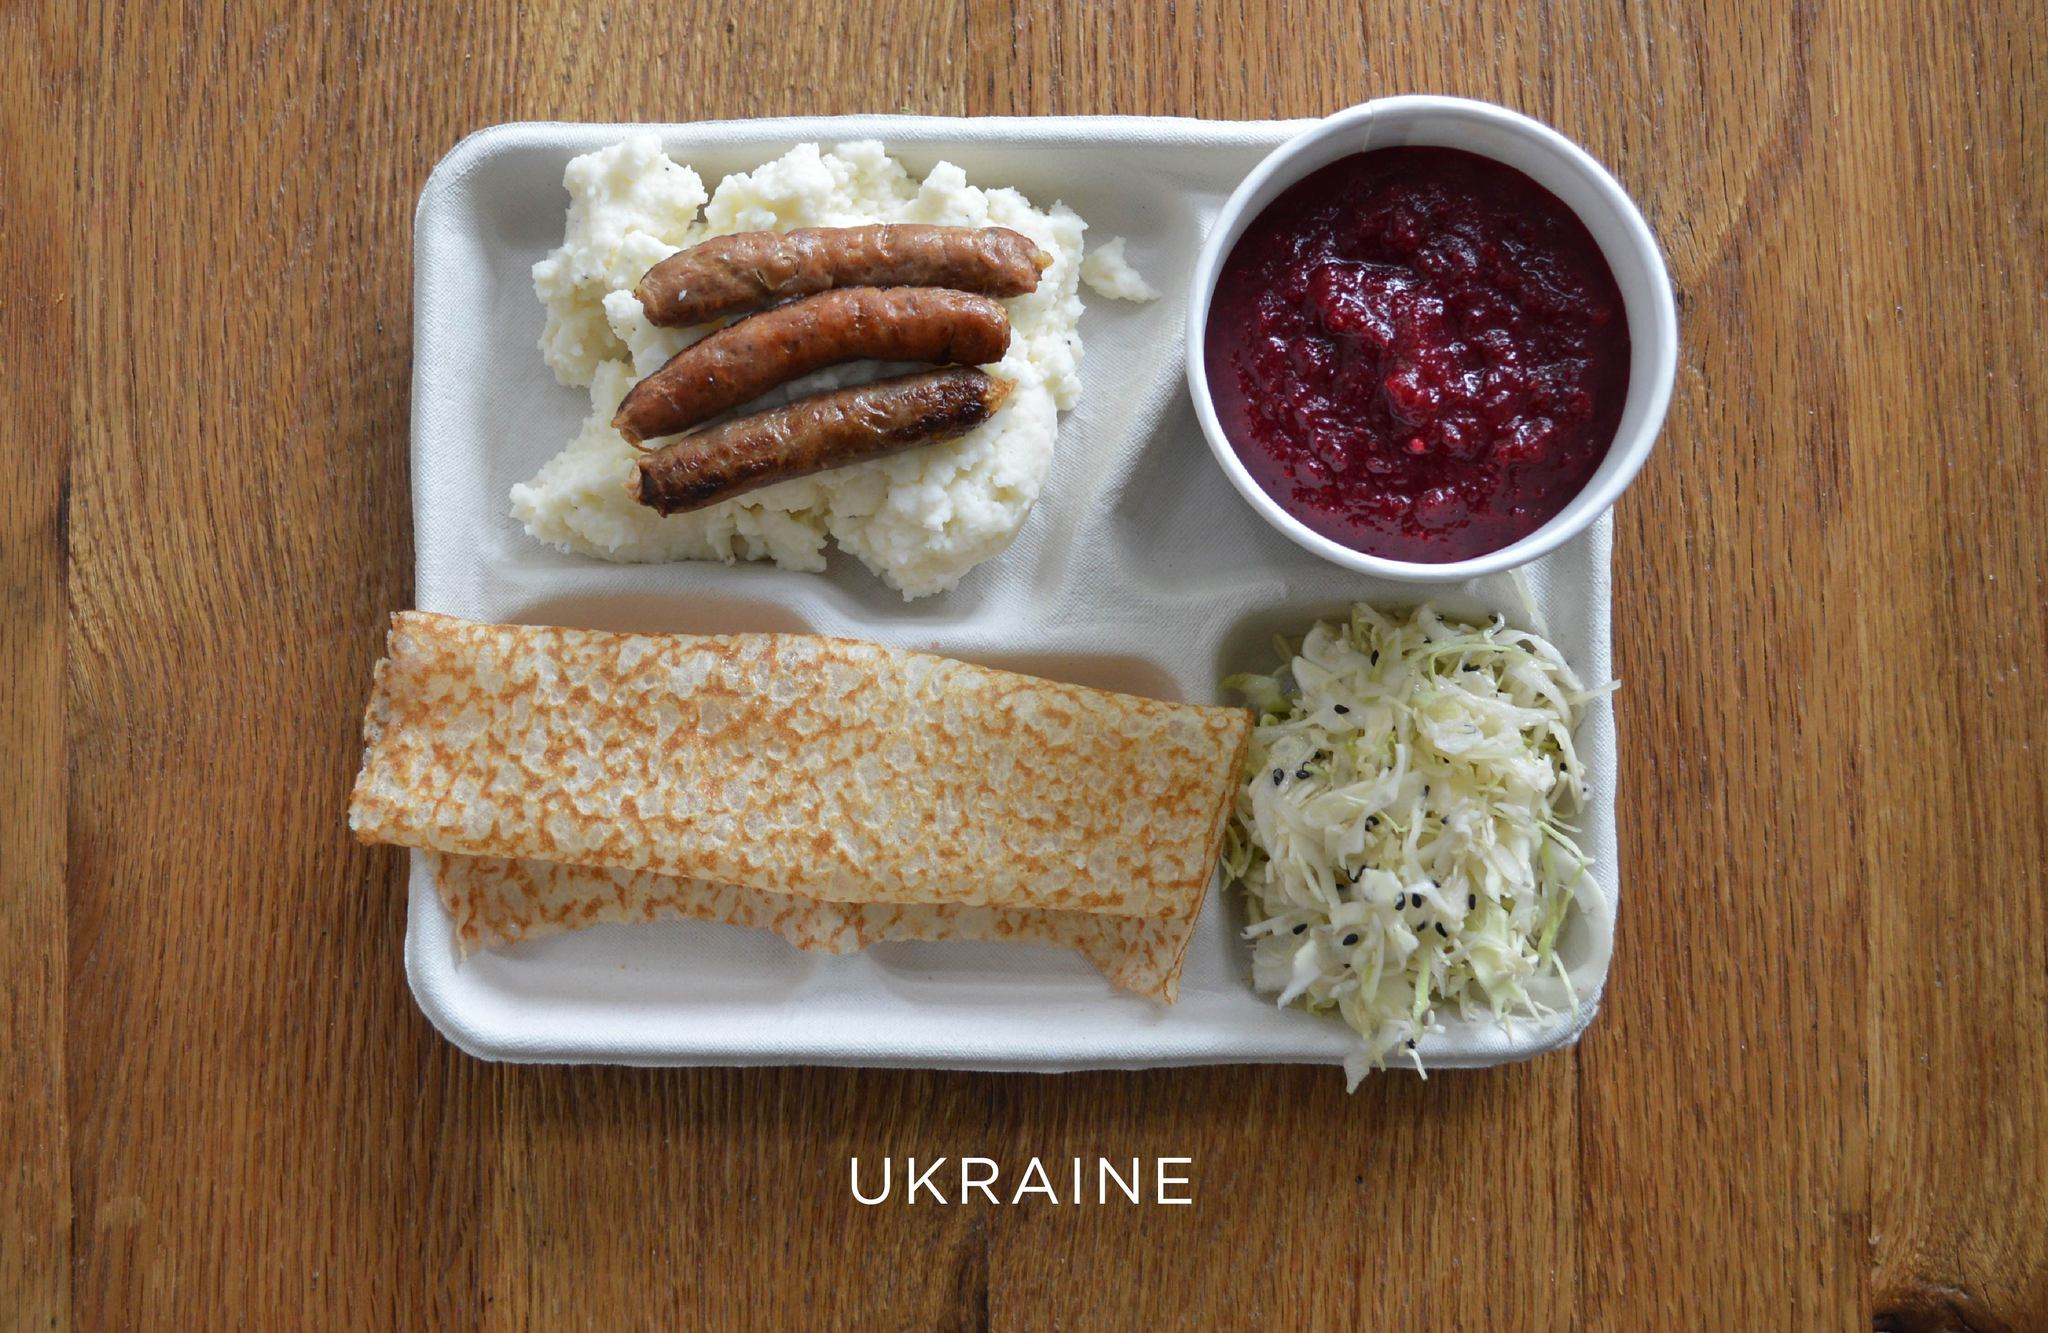 Finland schools subjects scrapped and replaced with topics as school lunches around the world brazil usa ukraine uk 9 show all fandeluxe Choice Image